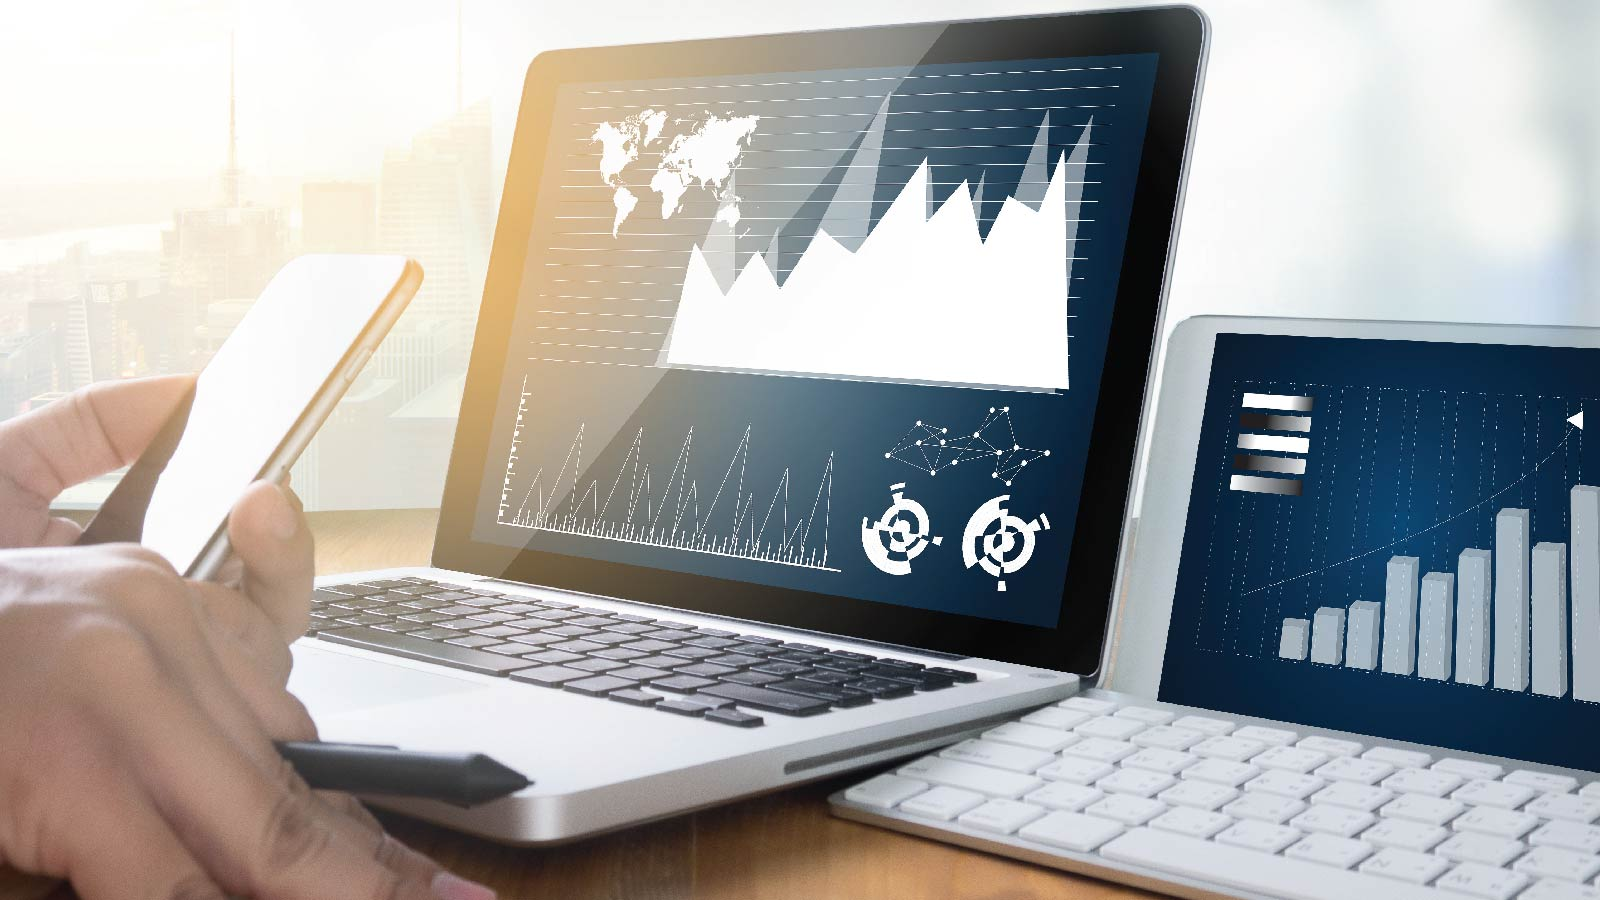 The role of real-time data analytics in improving and guiding business decisions